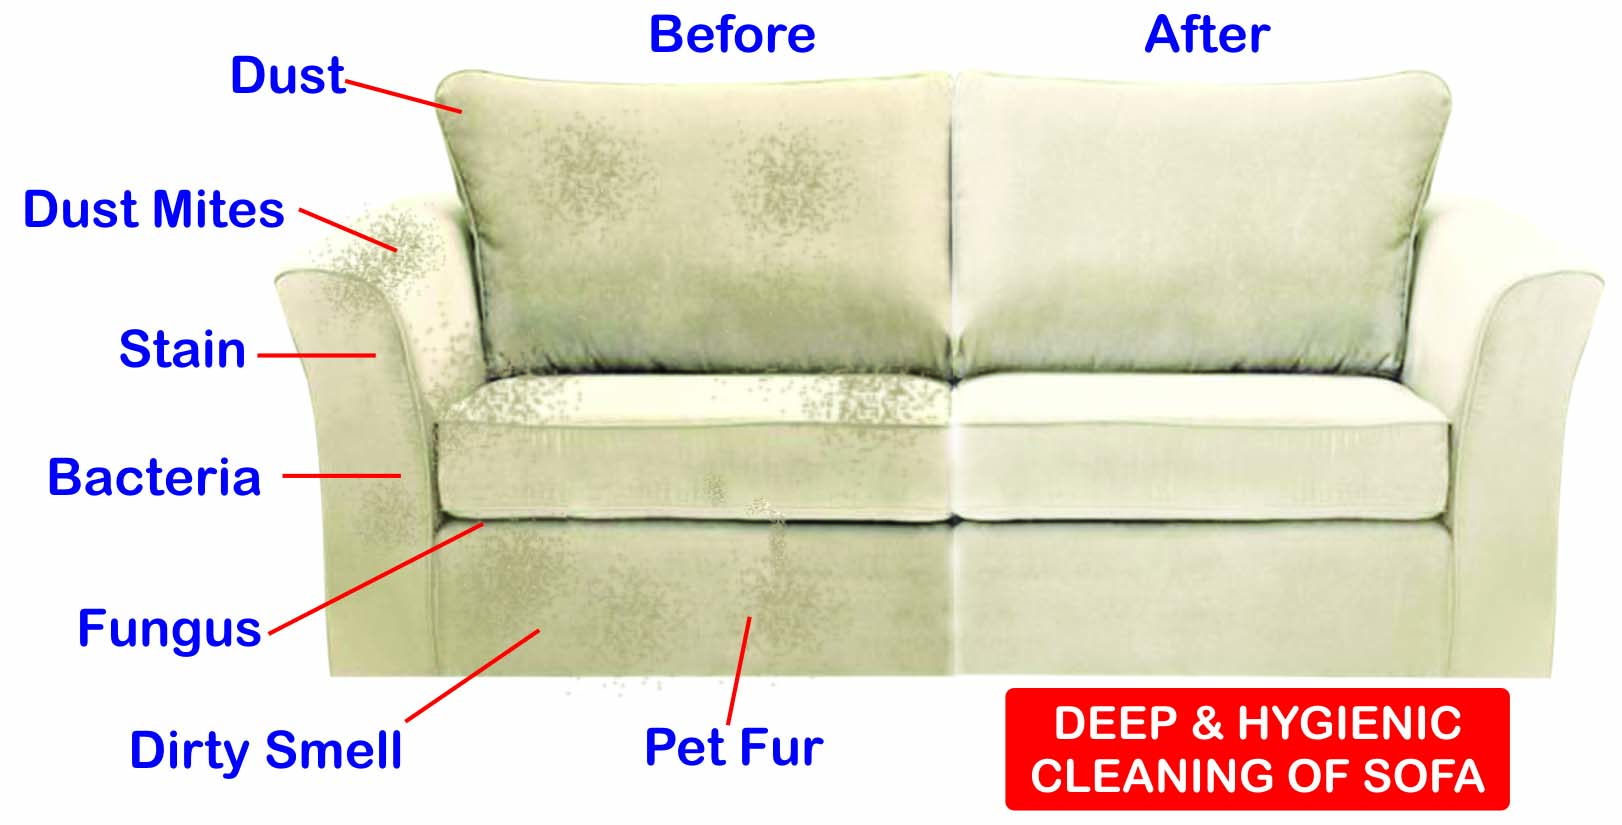 sofa cleaning services bangalore used bed for sale in abu dhabi service brooklyn